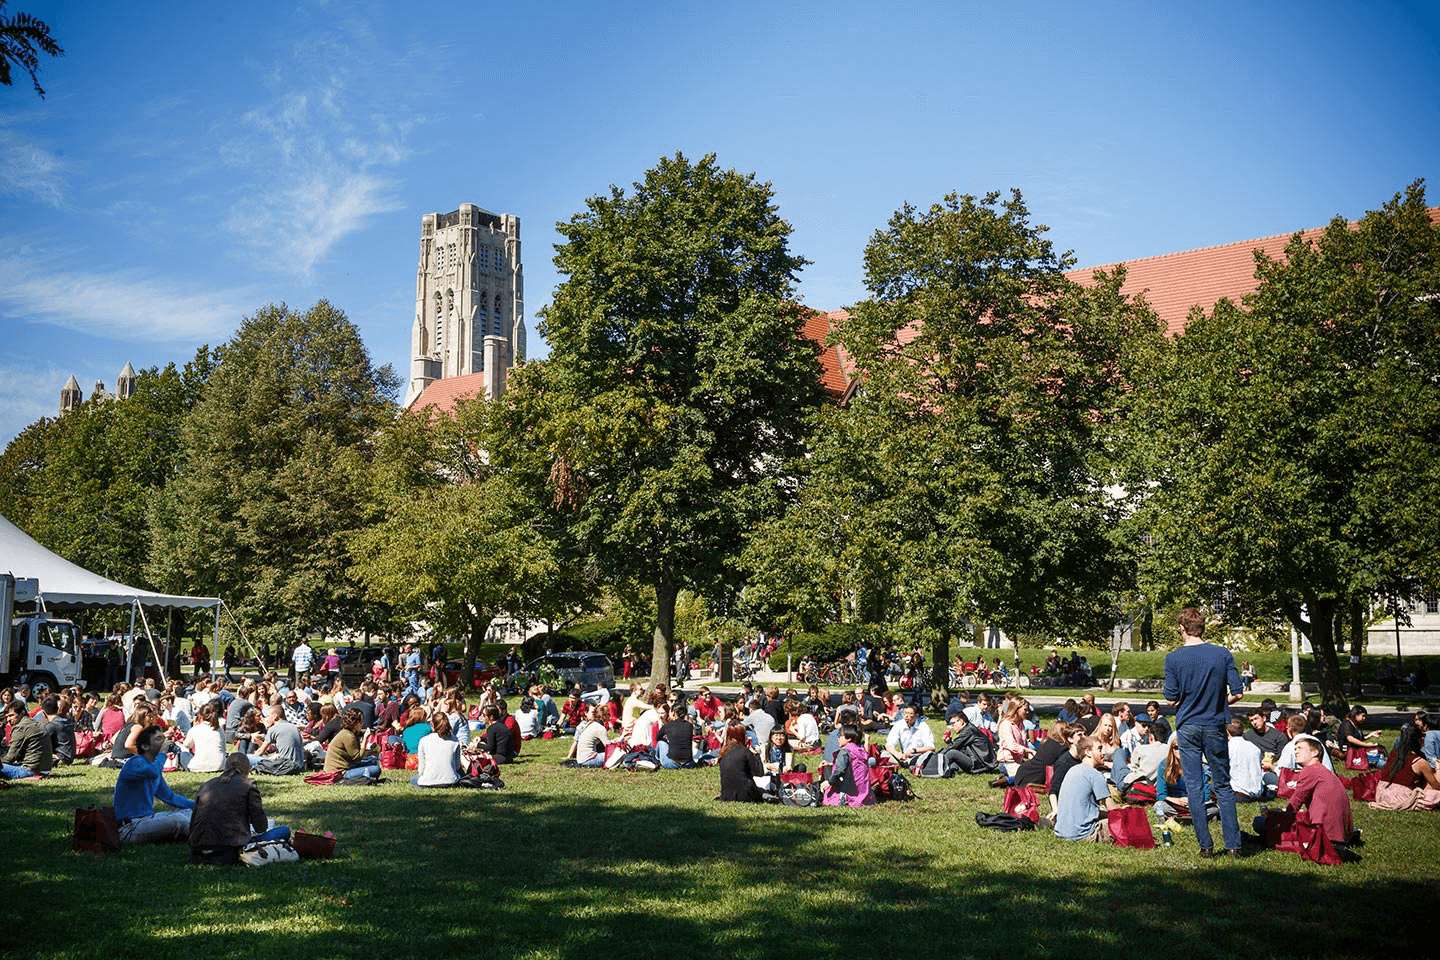 Students sitting on the University of Chicago campus lawn